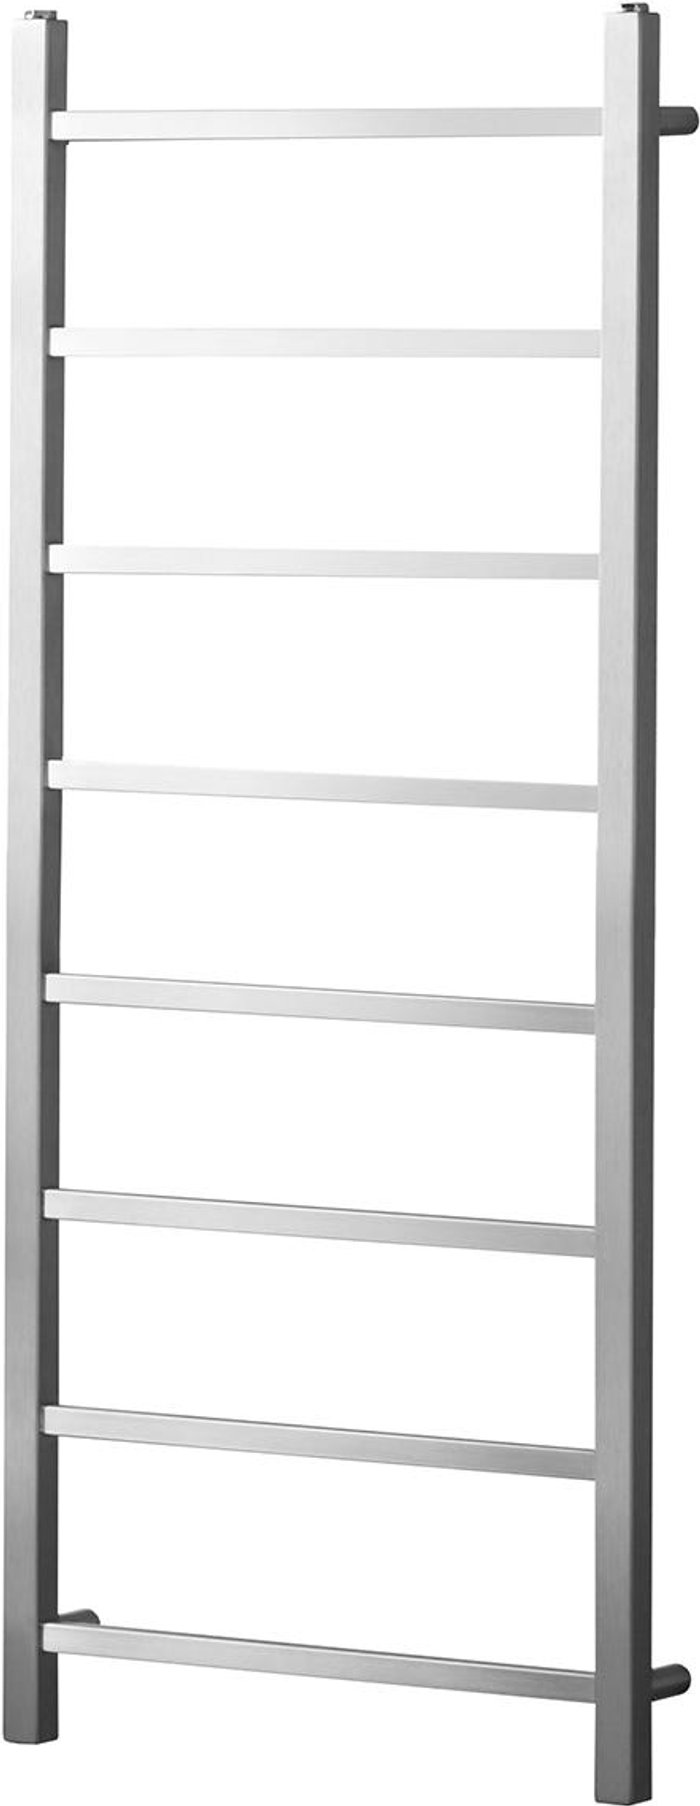 Towelrads Towelrads Diva Brushed Stainless Steel Towel warmer 1200 x 500 812 BTUs